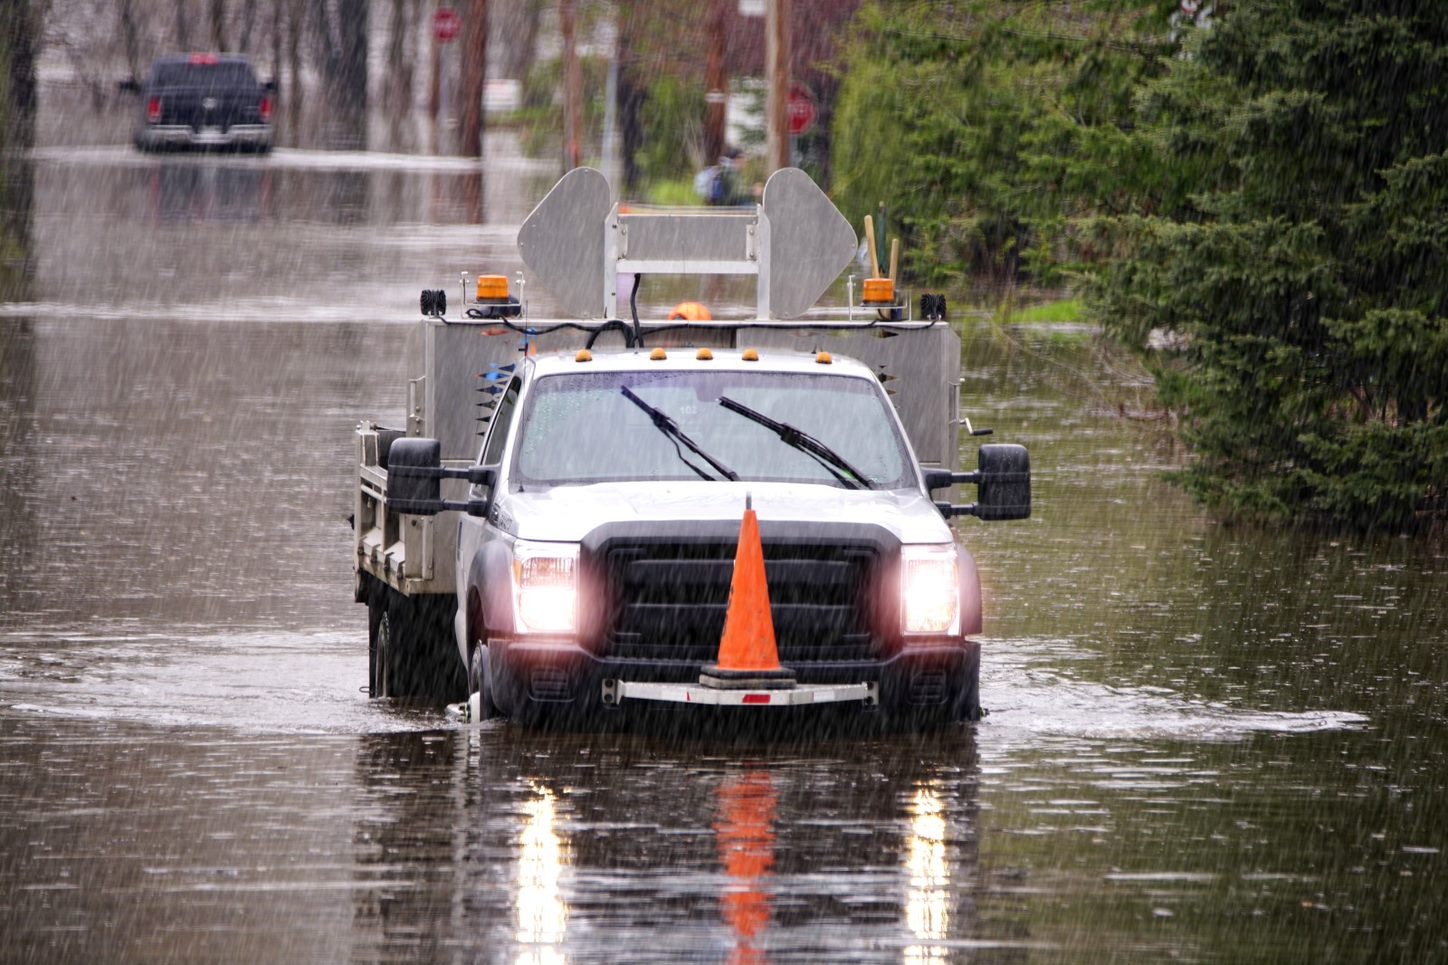 A truck is driving through rain and a flooded street